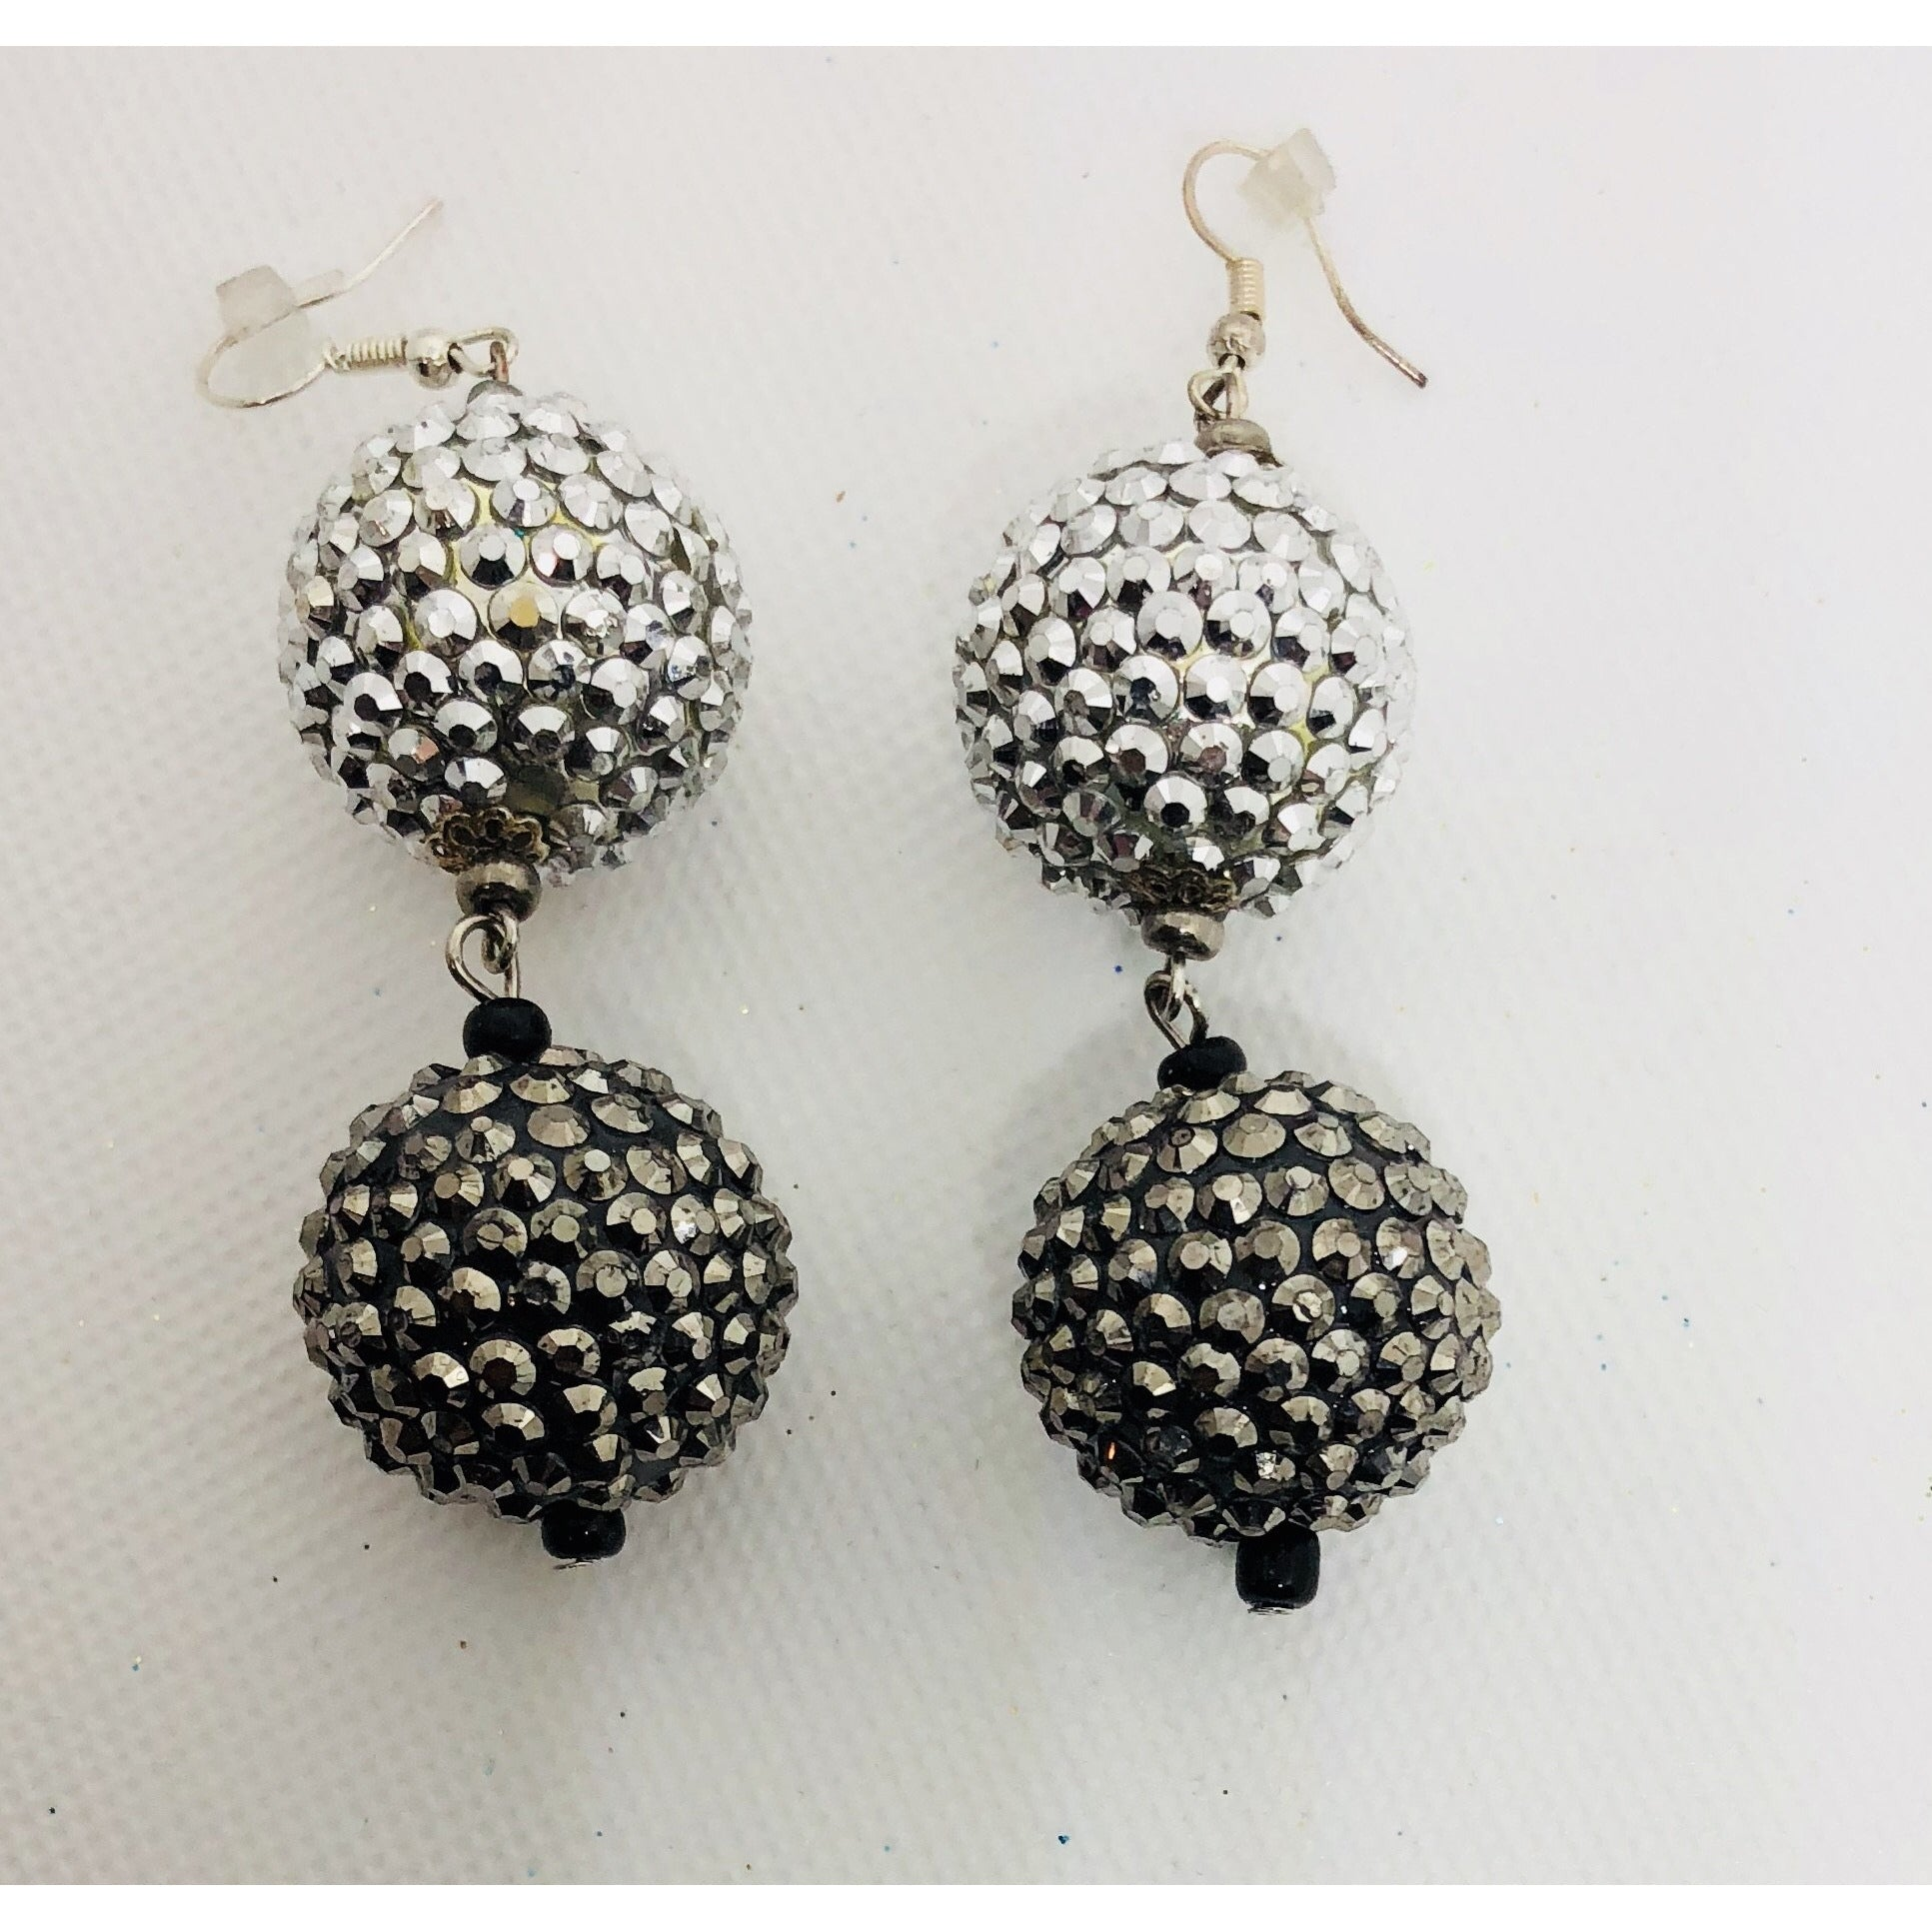 Sparkly and festive earrings